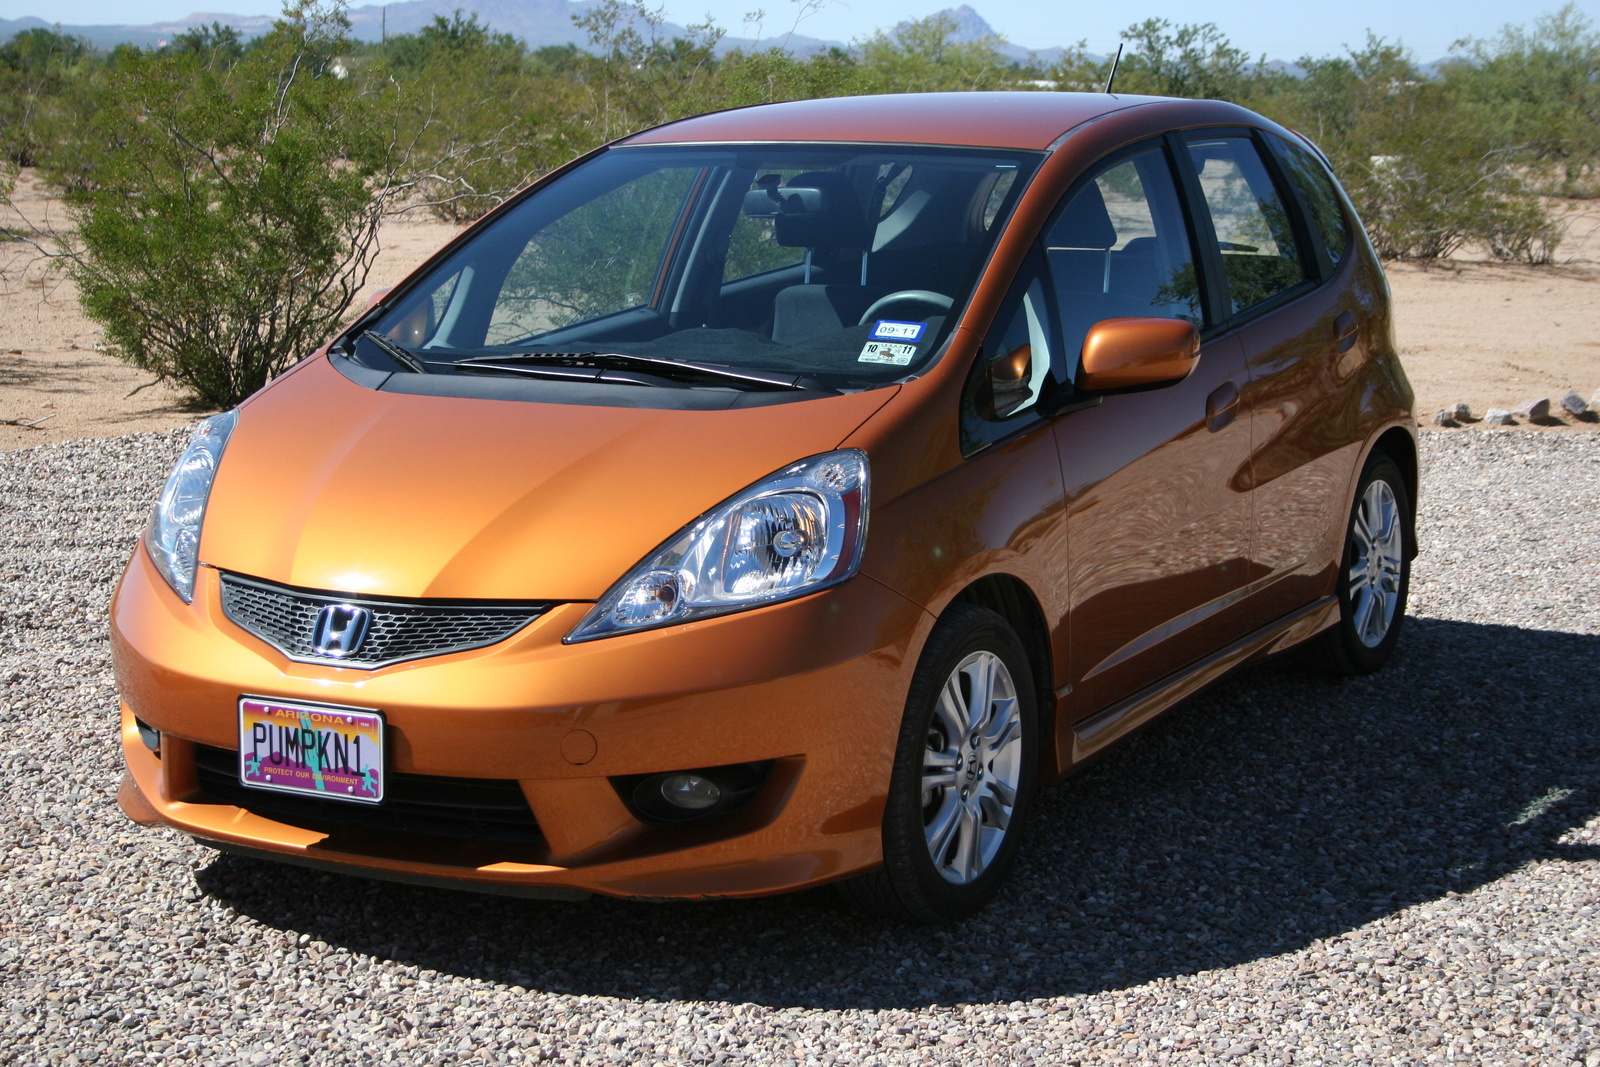 2010 honda fit reviews honda fit price photos and autos post. Black Bedroom Furniture Sets. Home Design Ideas